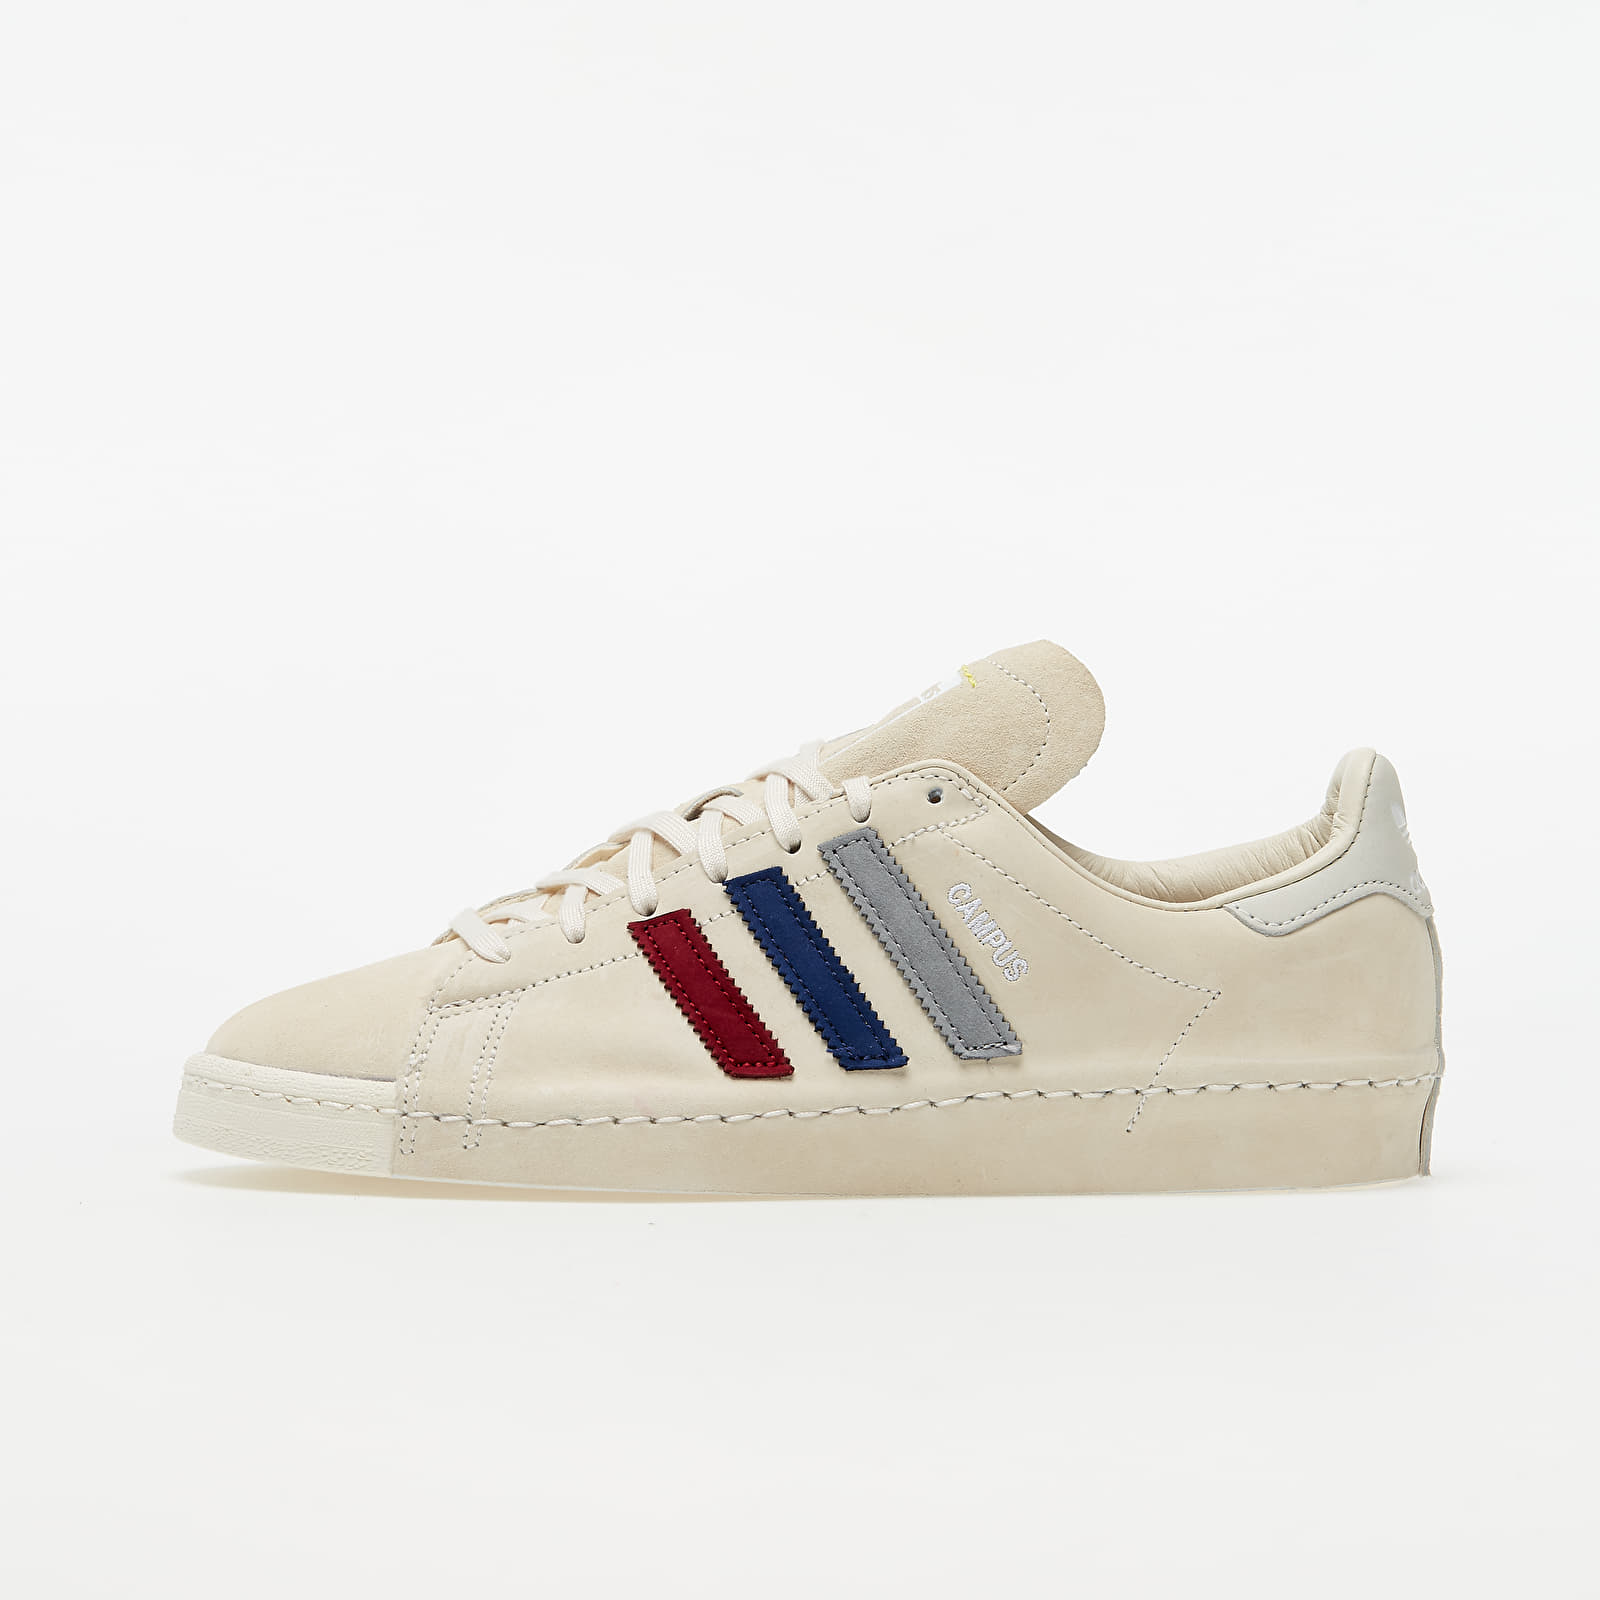 adidas Consortium x Recouture Campus 80s SH Core White/ Dark Blue/ Core Black EUR 38